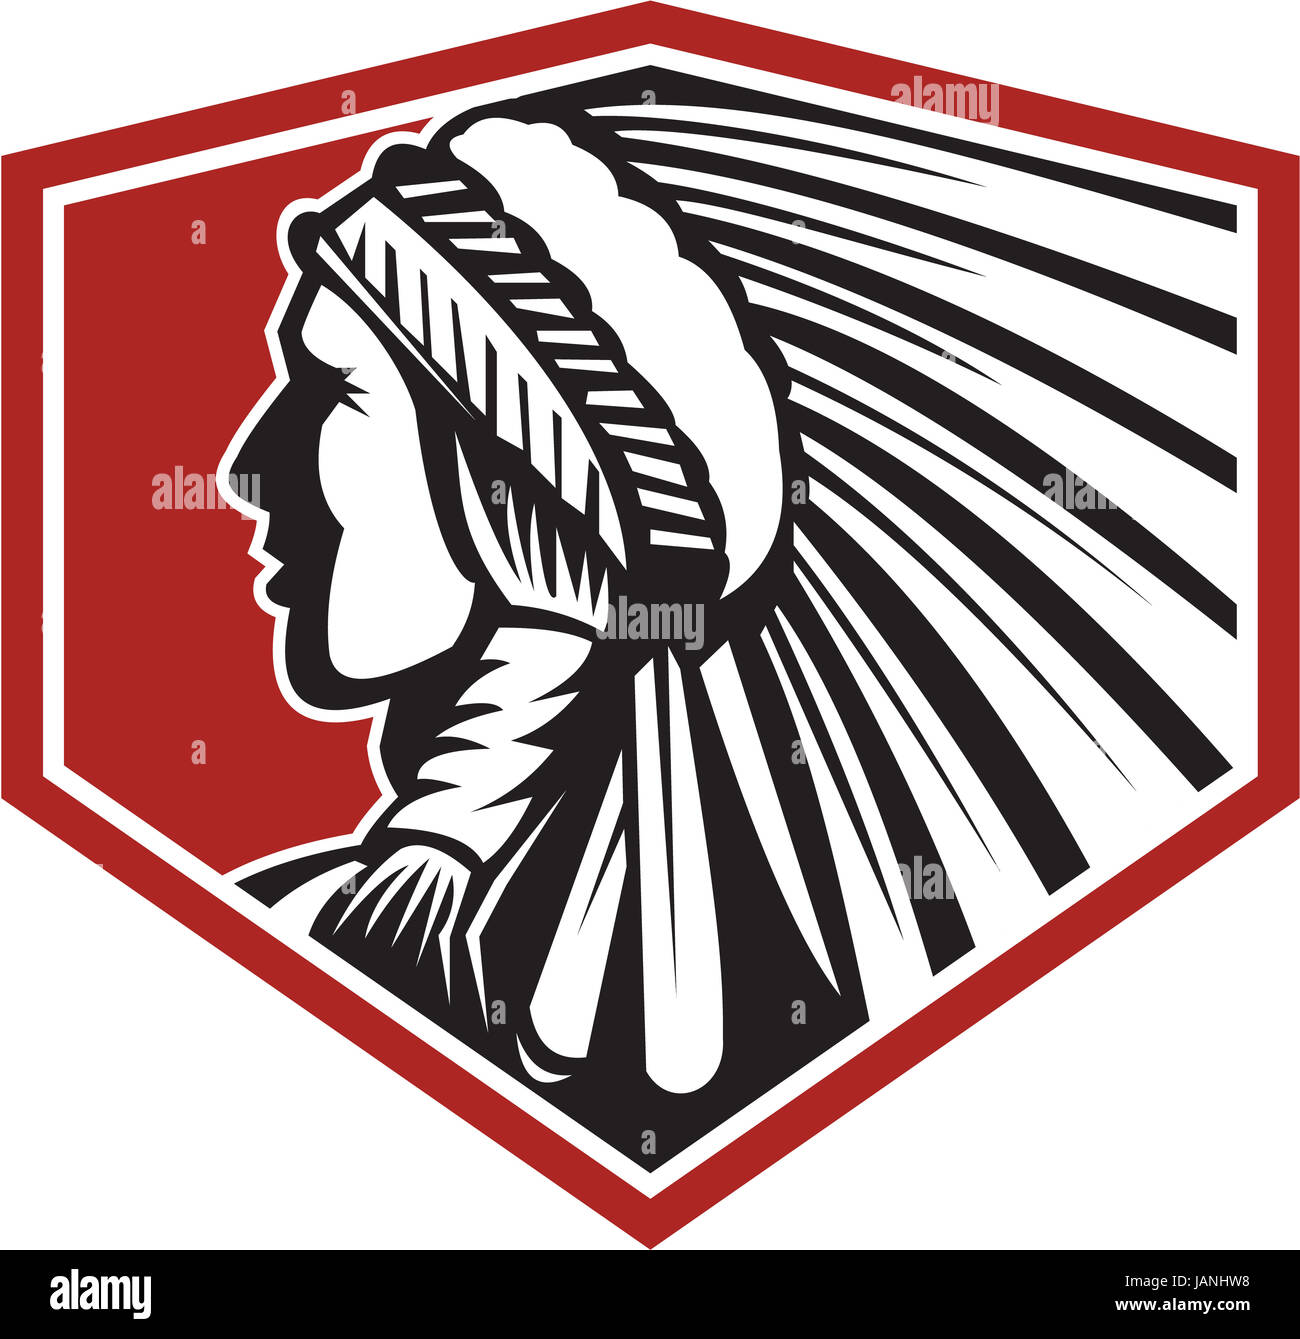 Illustration of a native american indian chief wearing feathers headdress viewed from side done in retro style on - Stock Image